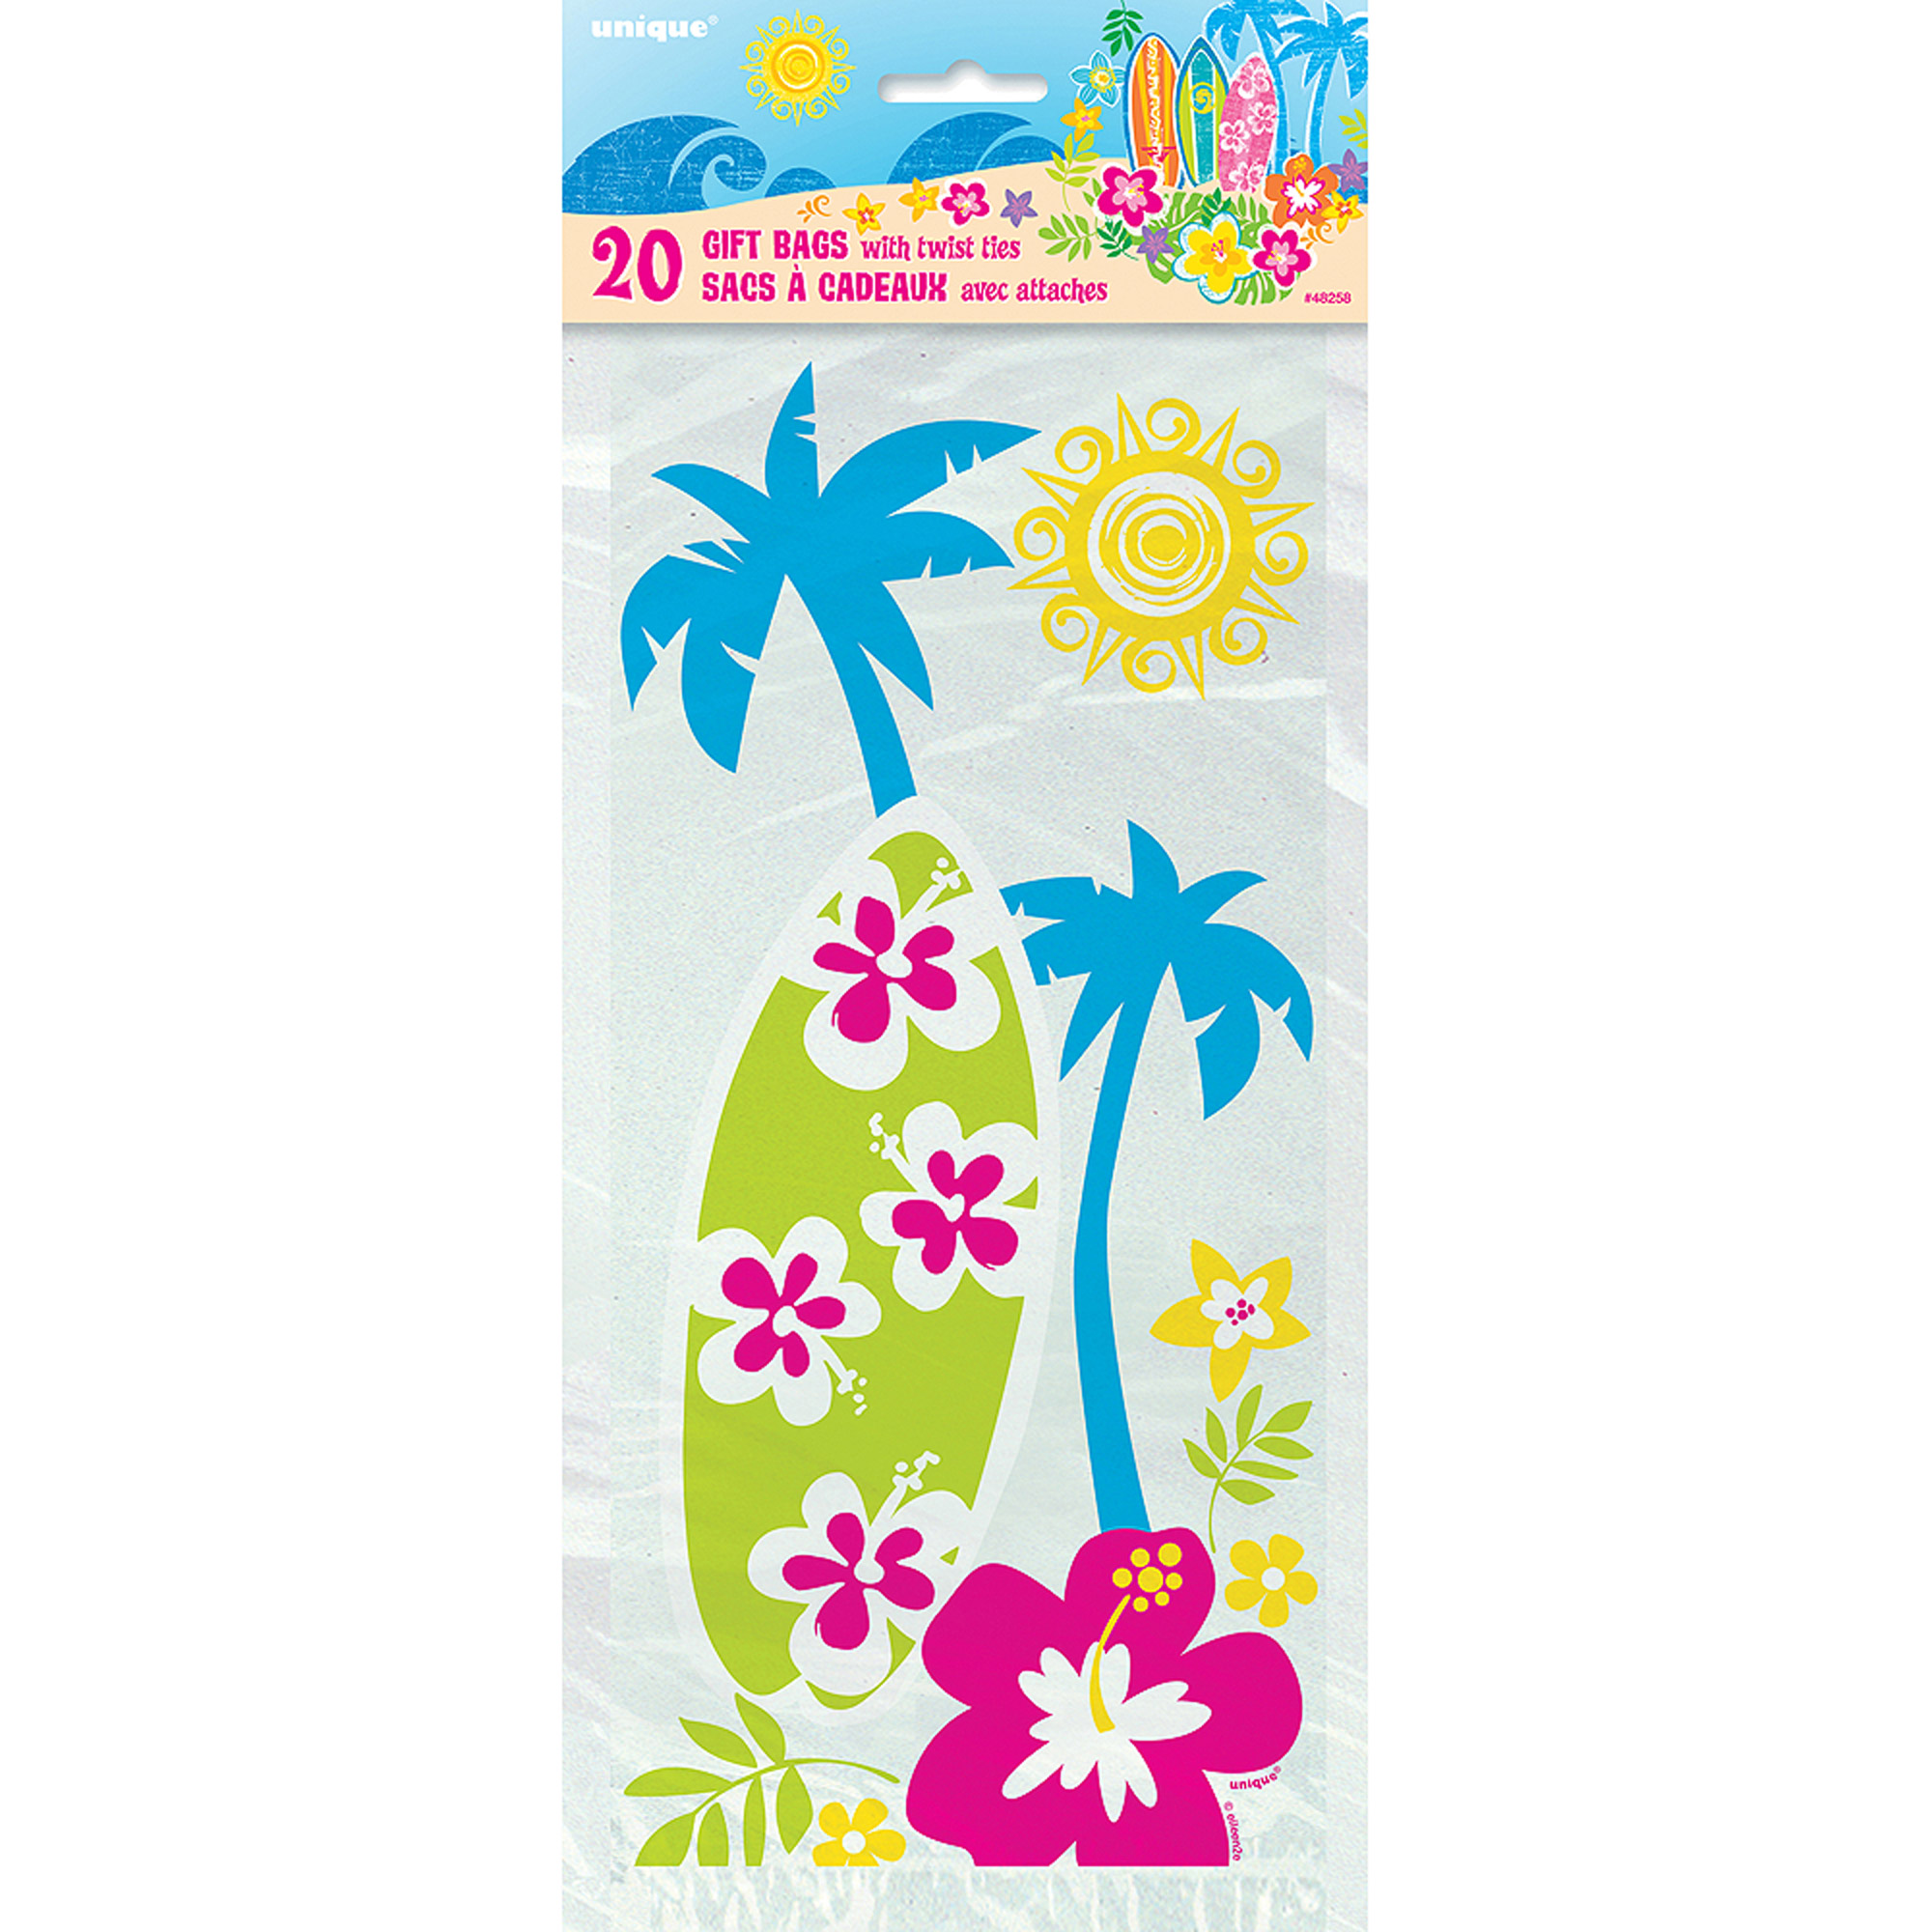 Hula Girl Luau Party Cellophane Bags, 20-Count